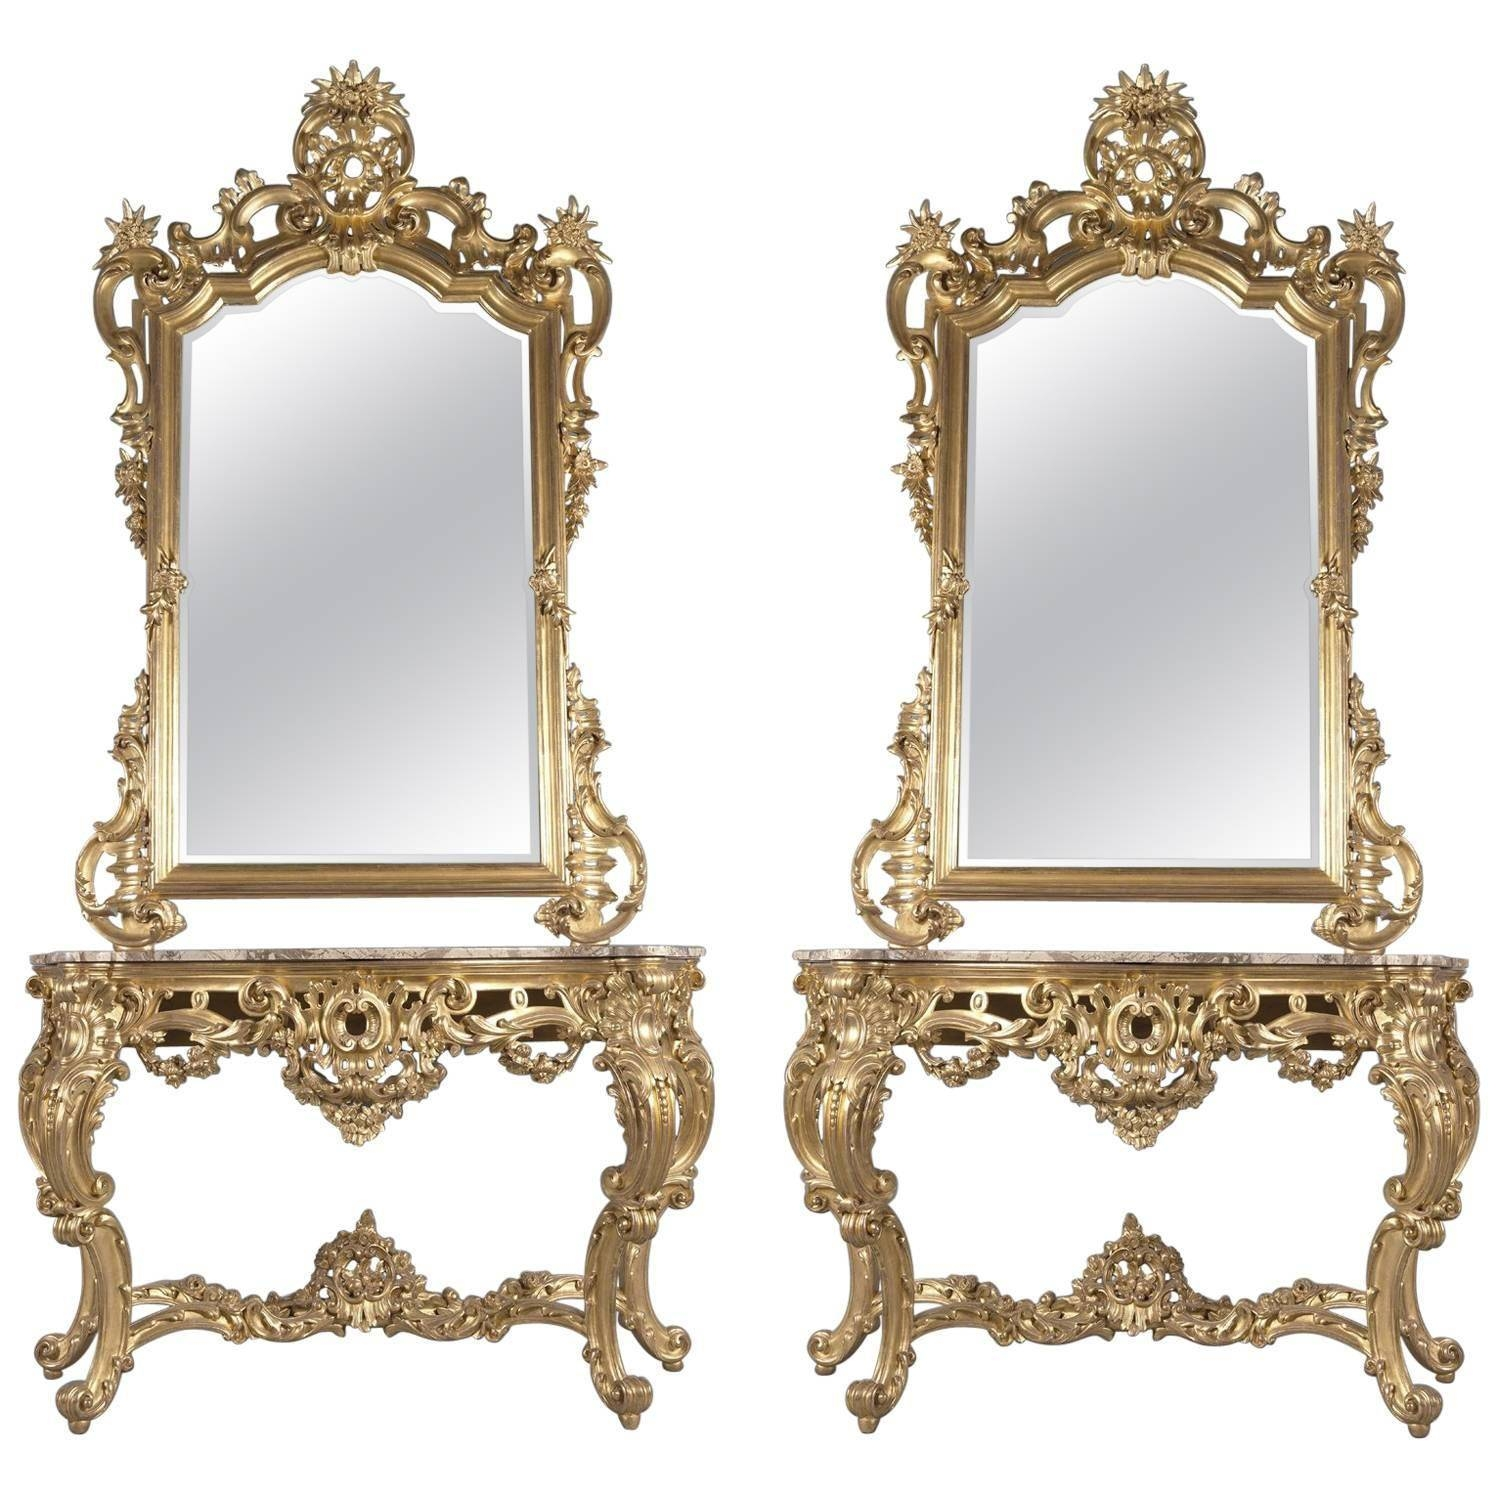 Rococo Mirrors - 41 For Sale At 1Stdibs with Rococo Mirrors (Image 22 of 25)